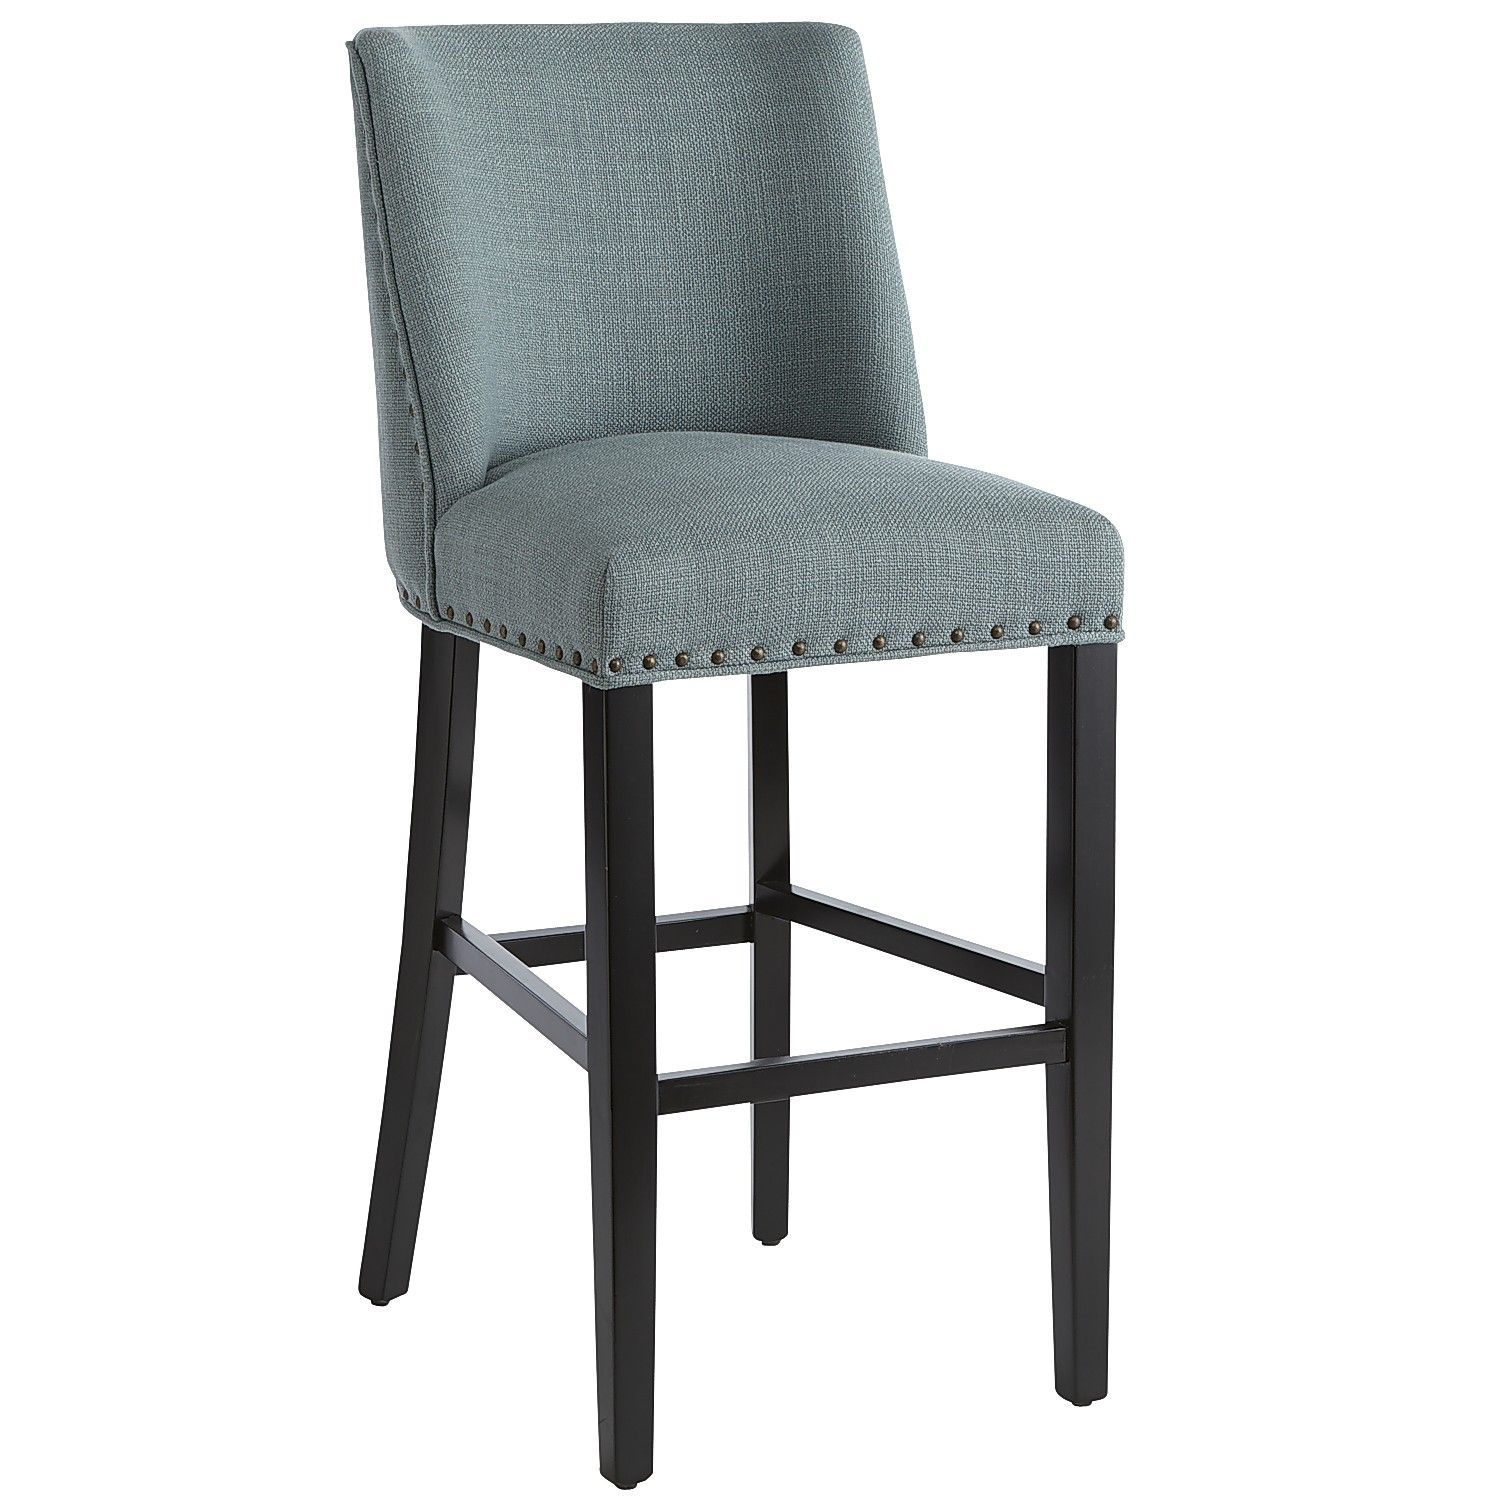 Corinne Cornflower Bar Stool Bar Stools Counter Bar